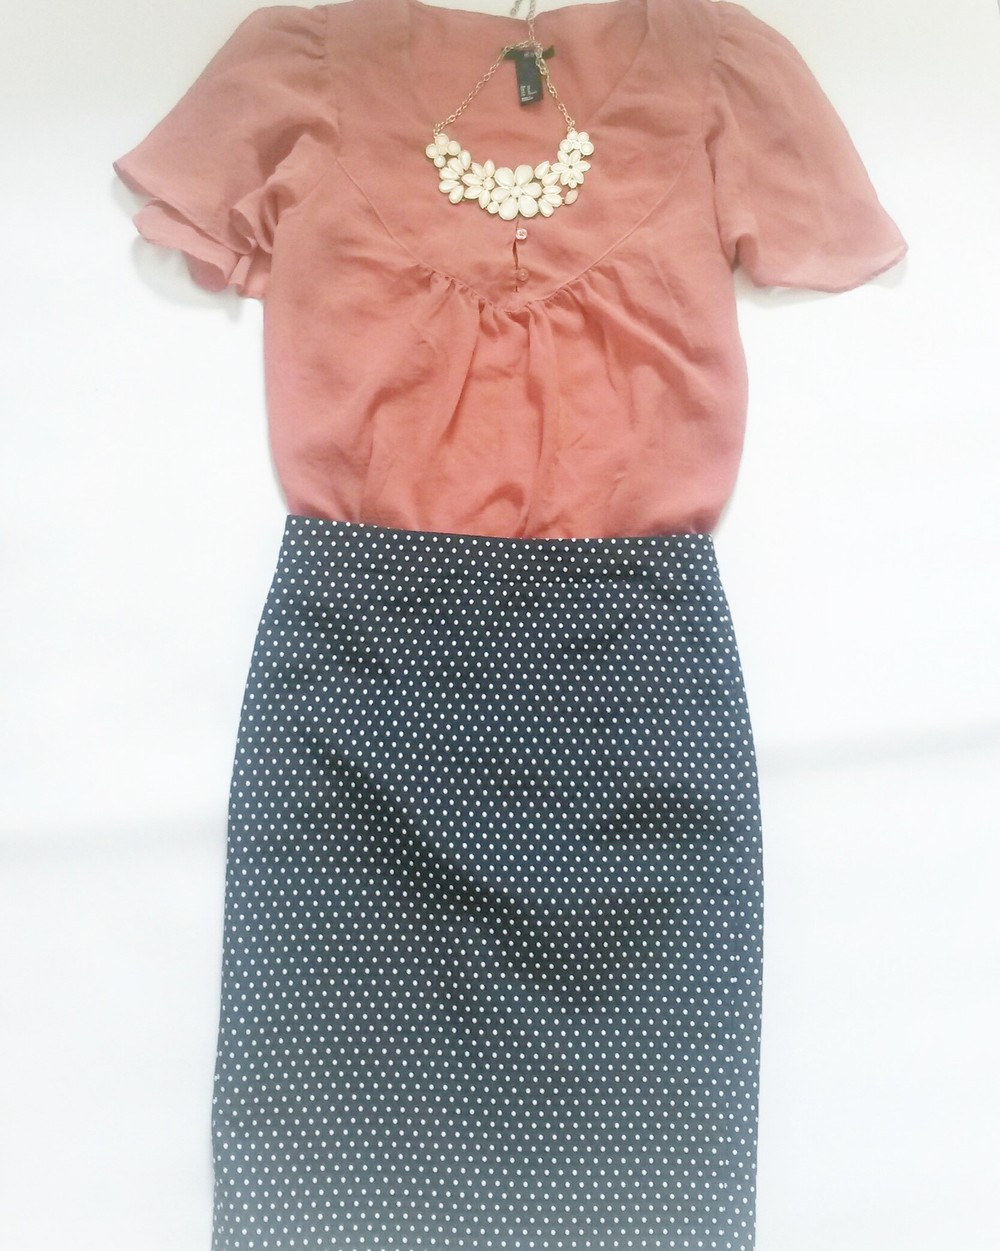 H&M dusty rose blouse, J. Crew polka dot skirt (new with tag), white statement necklace, all thrifted